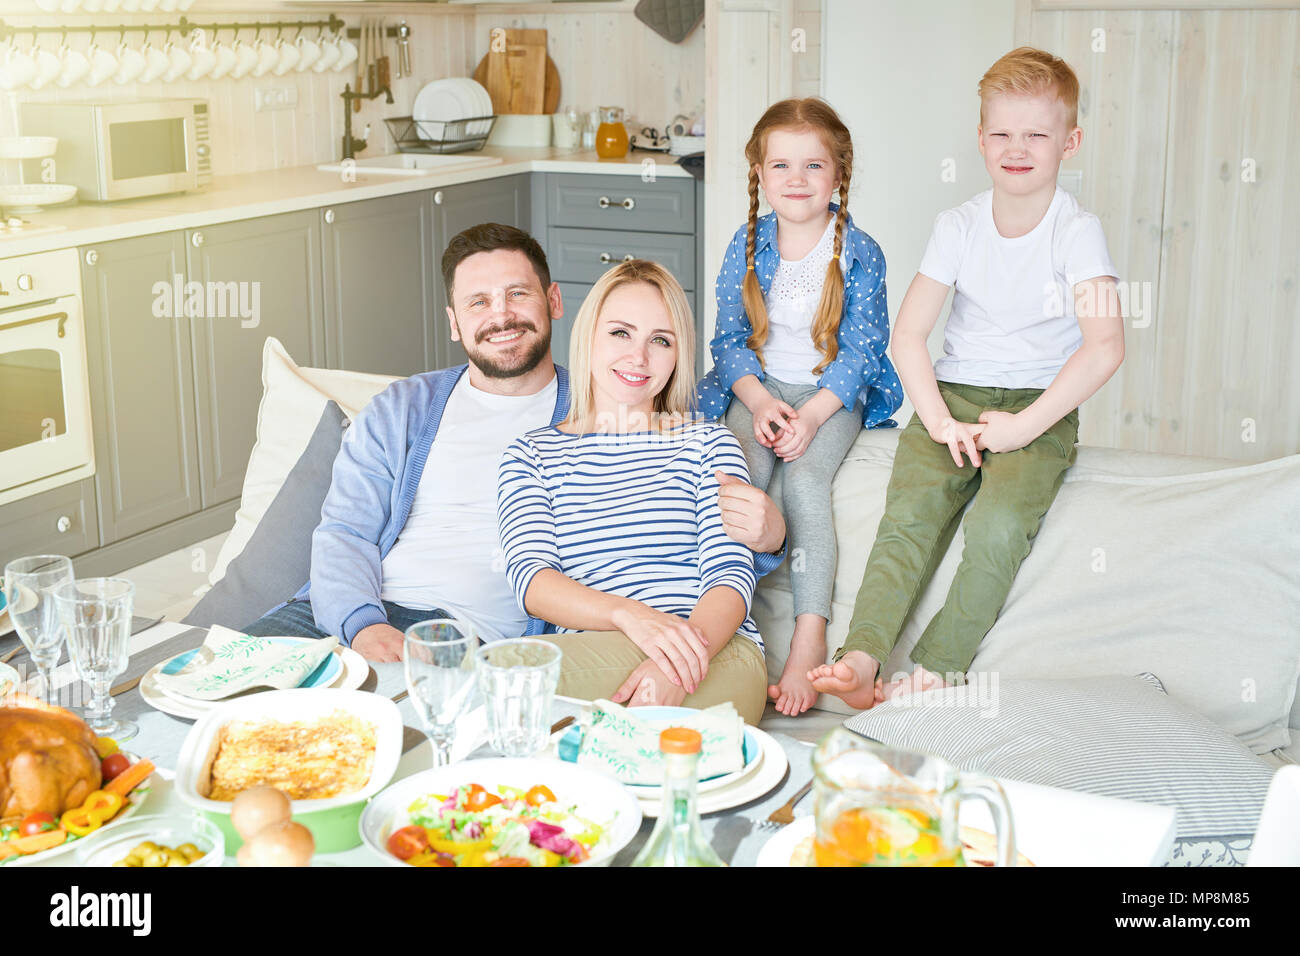 Successful Family Posing at Home - Stock Image